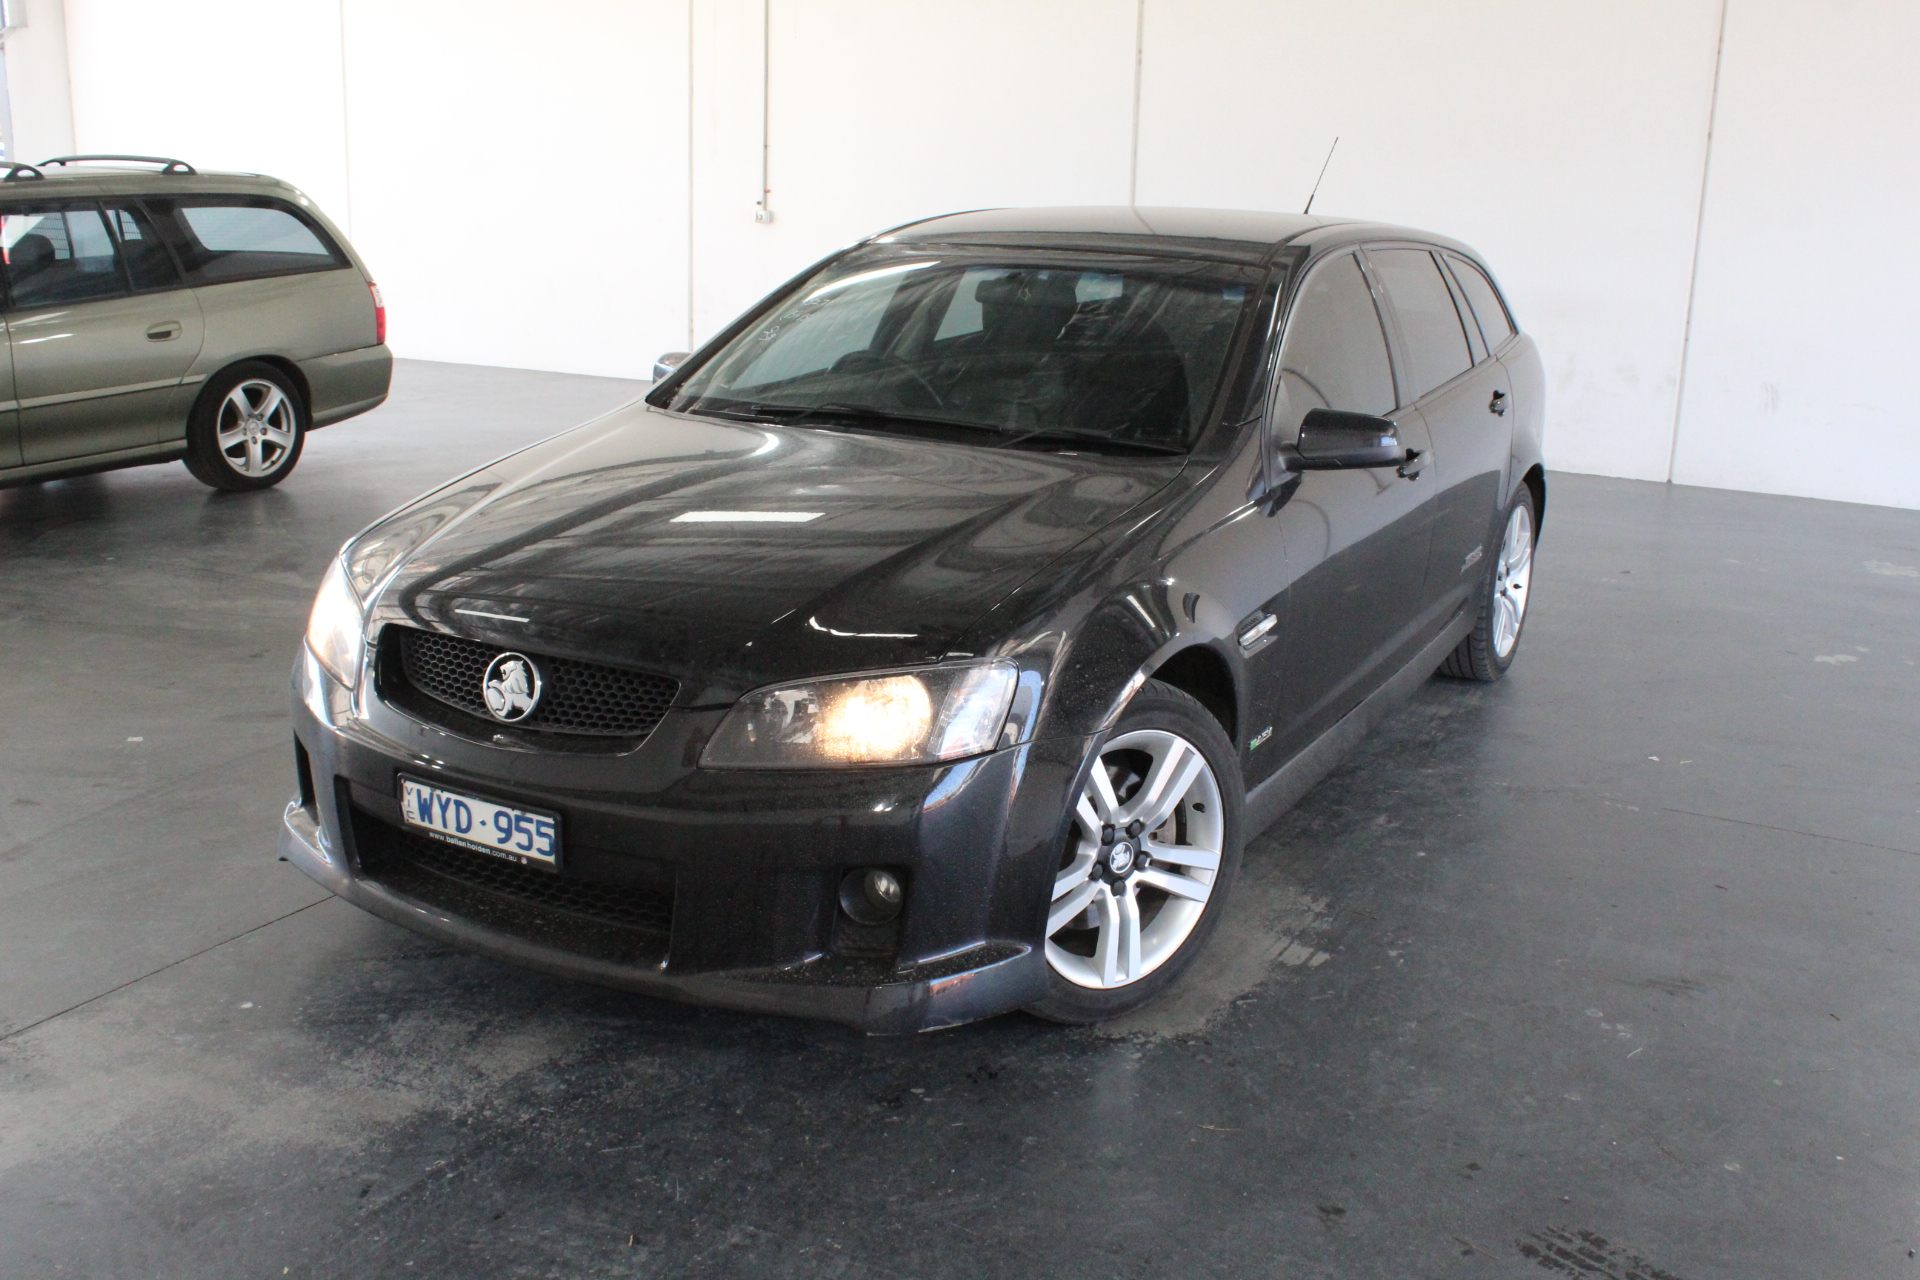 2009 Holden Commodore SS VE Automatic Wagon